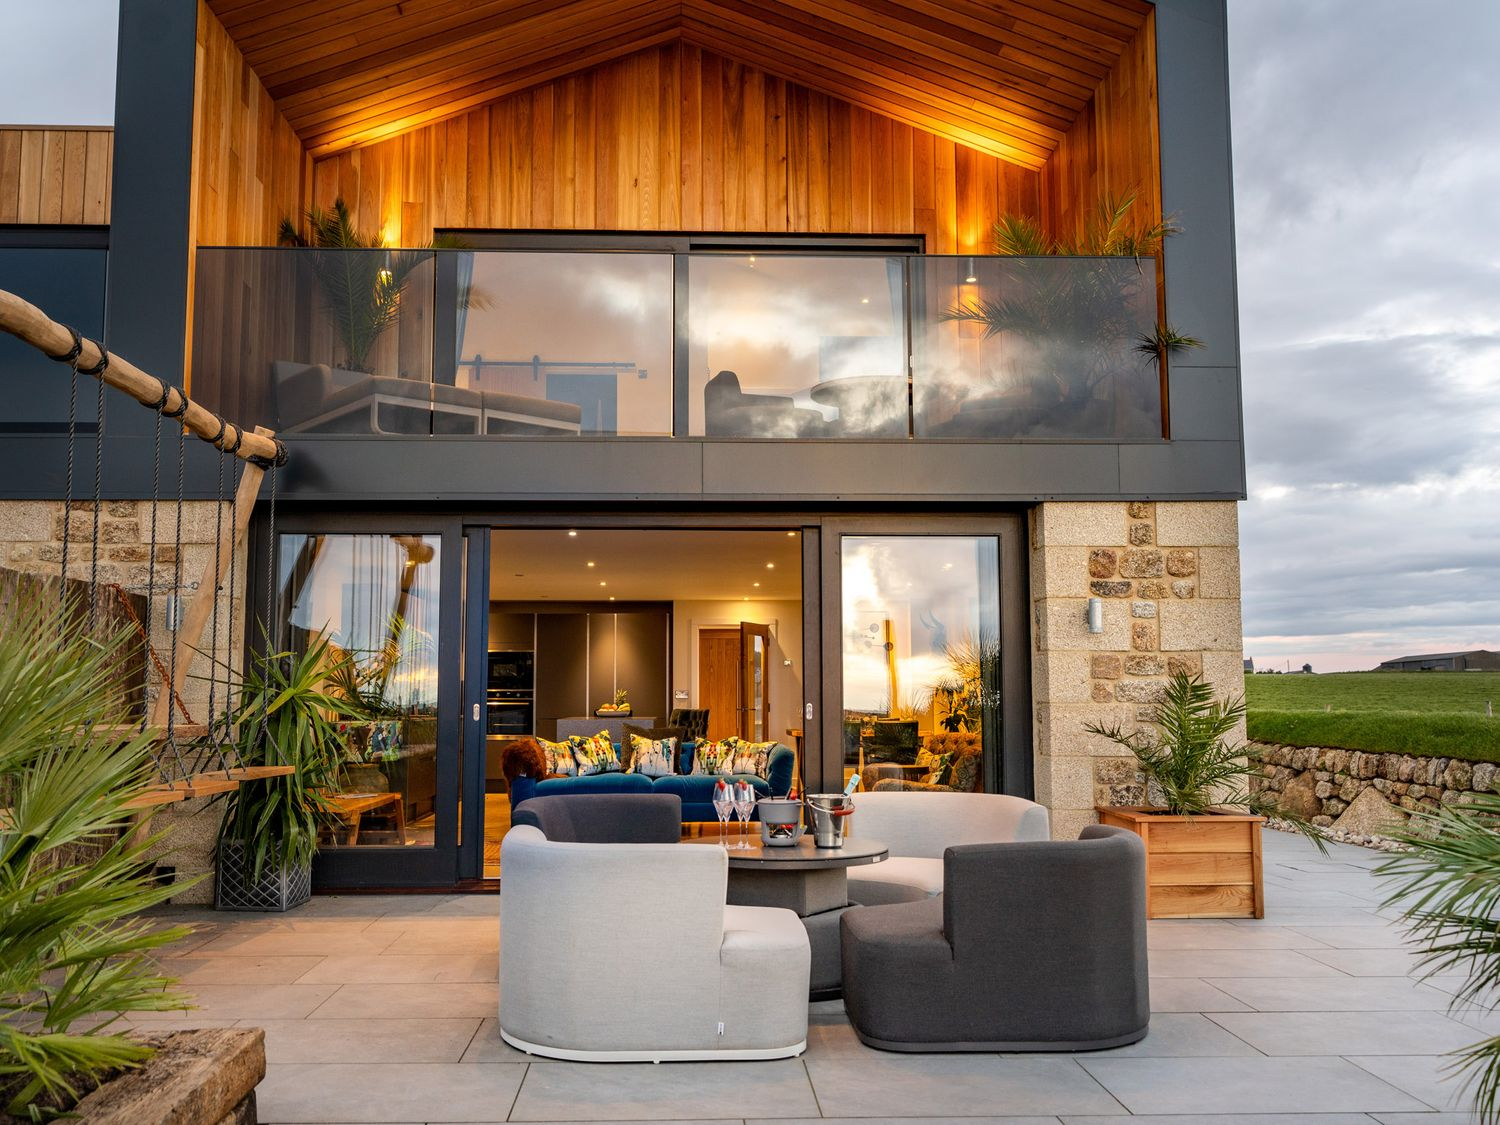 Cornwall: 5 Star Luxurious stay with Hot Tub